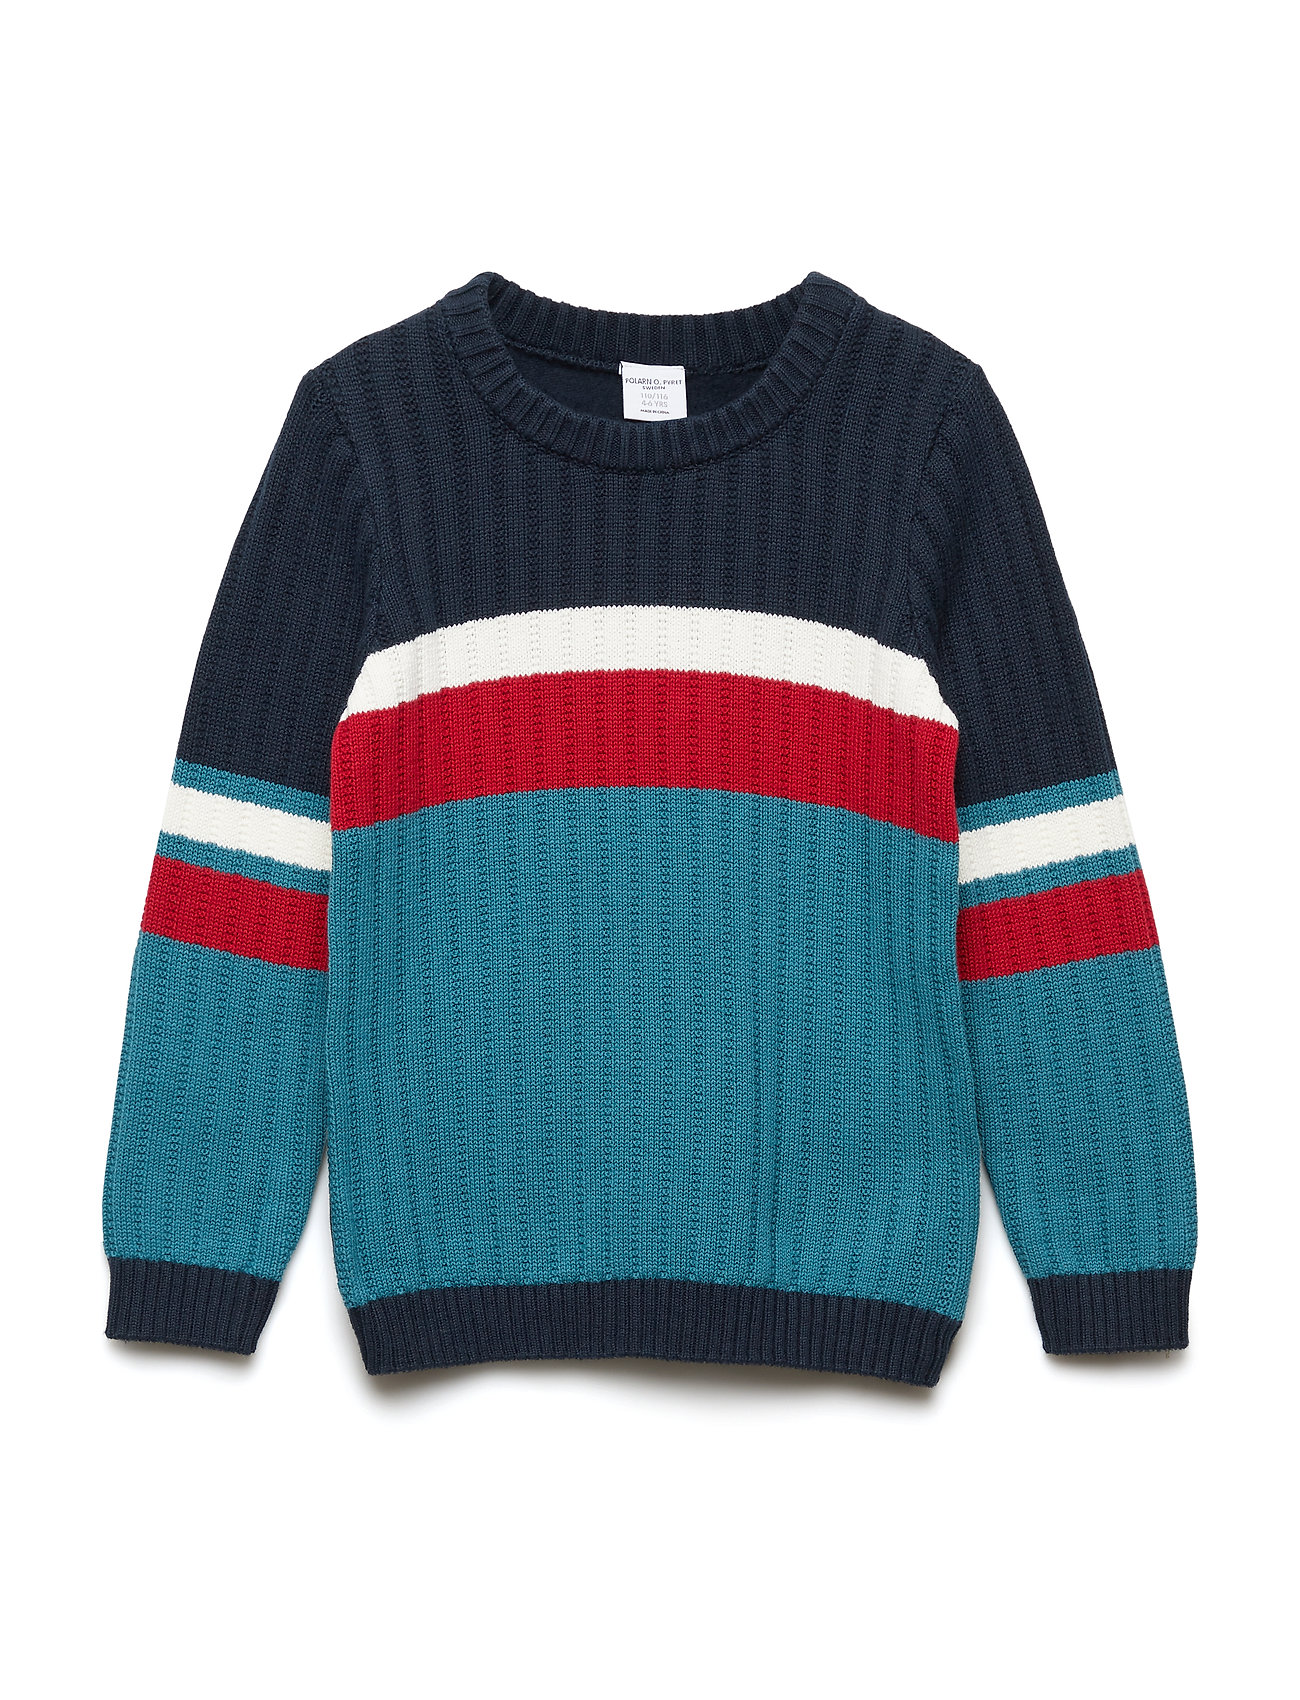 Polarn O. Pyret Sweater Knitted Pre-school